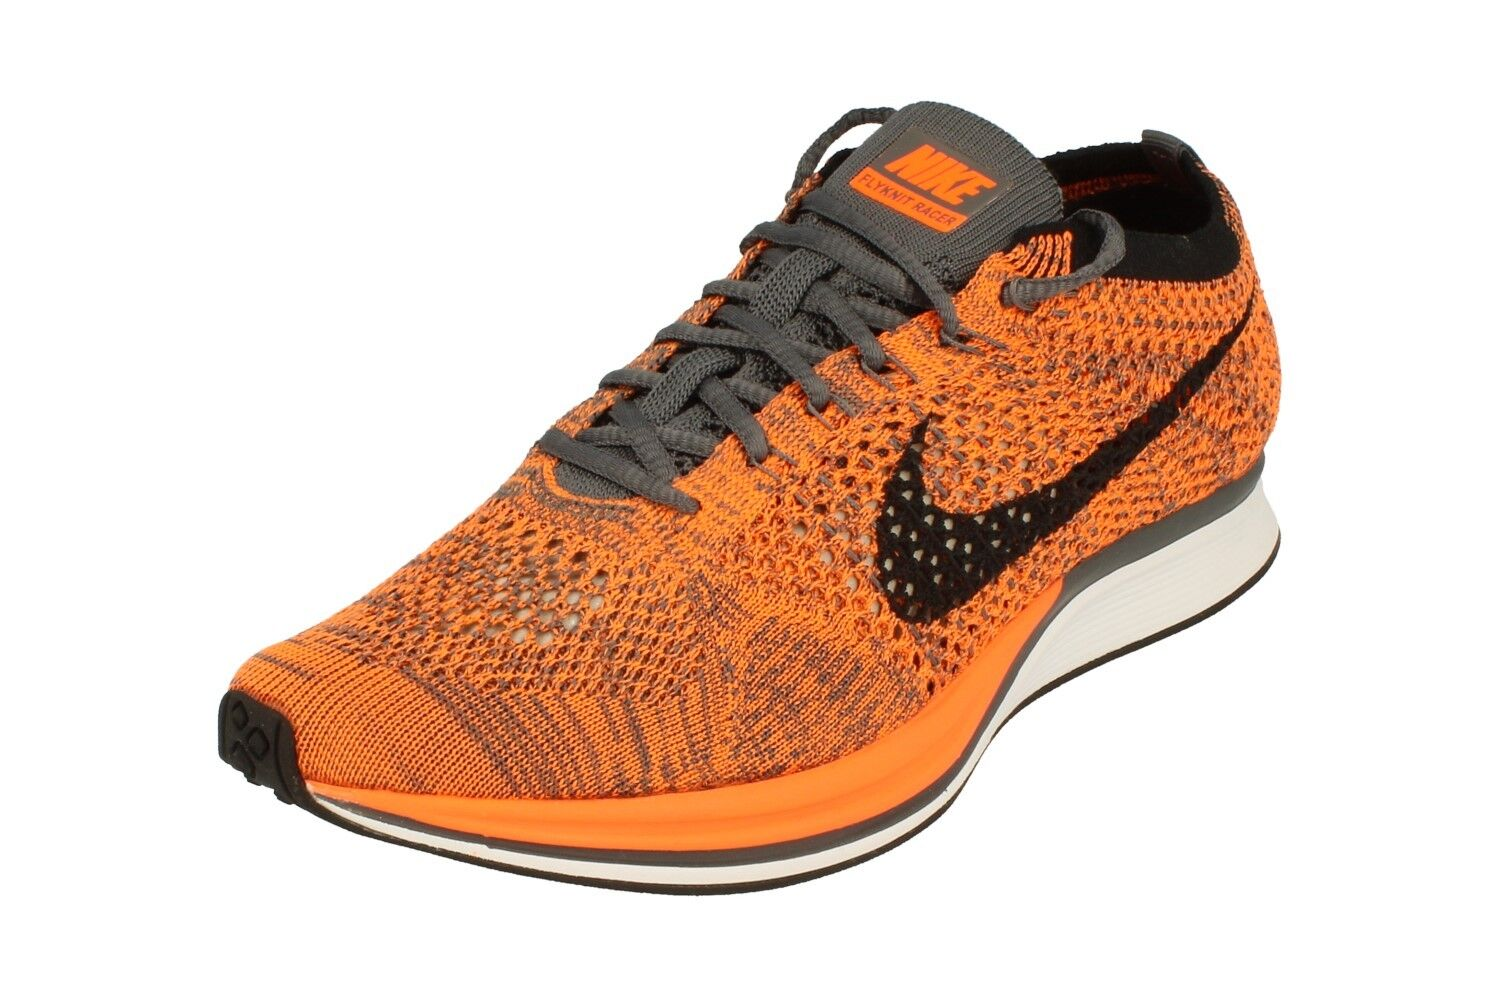 check out 2bac2 dd2d1 ... get nike course flyknit débardeur unisexe basket course nike 526628  baskets 810 bc68d7 42f0c 77a00